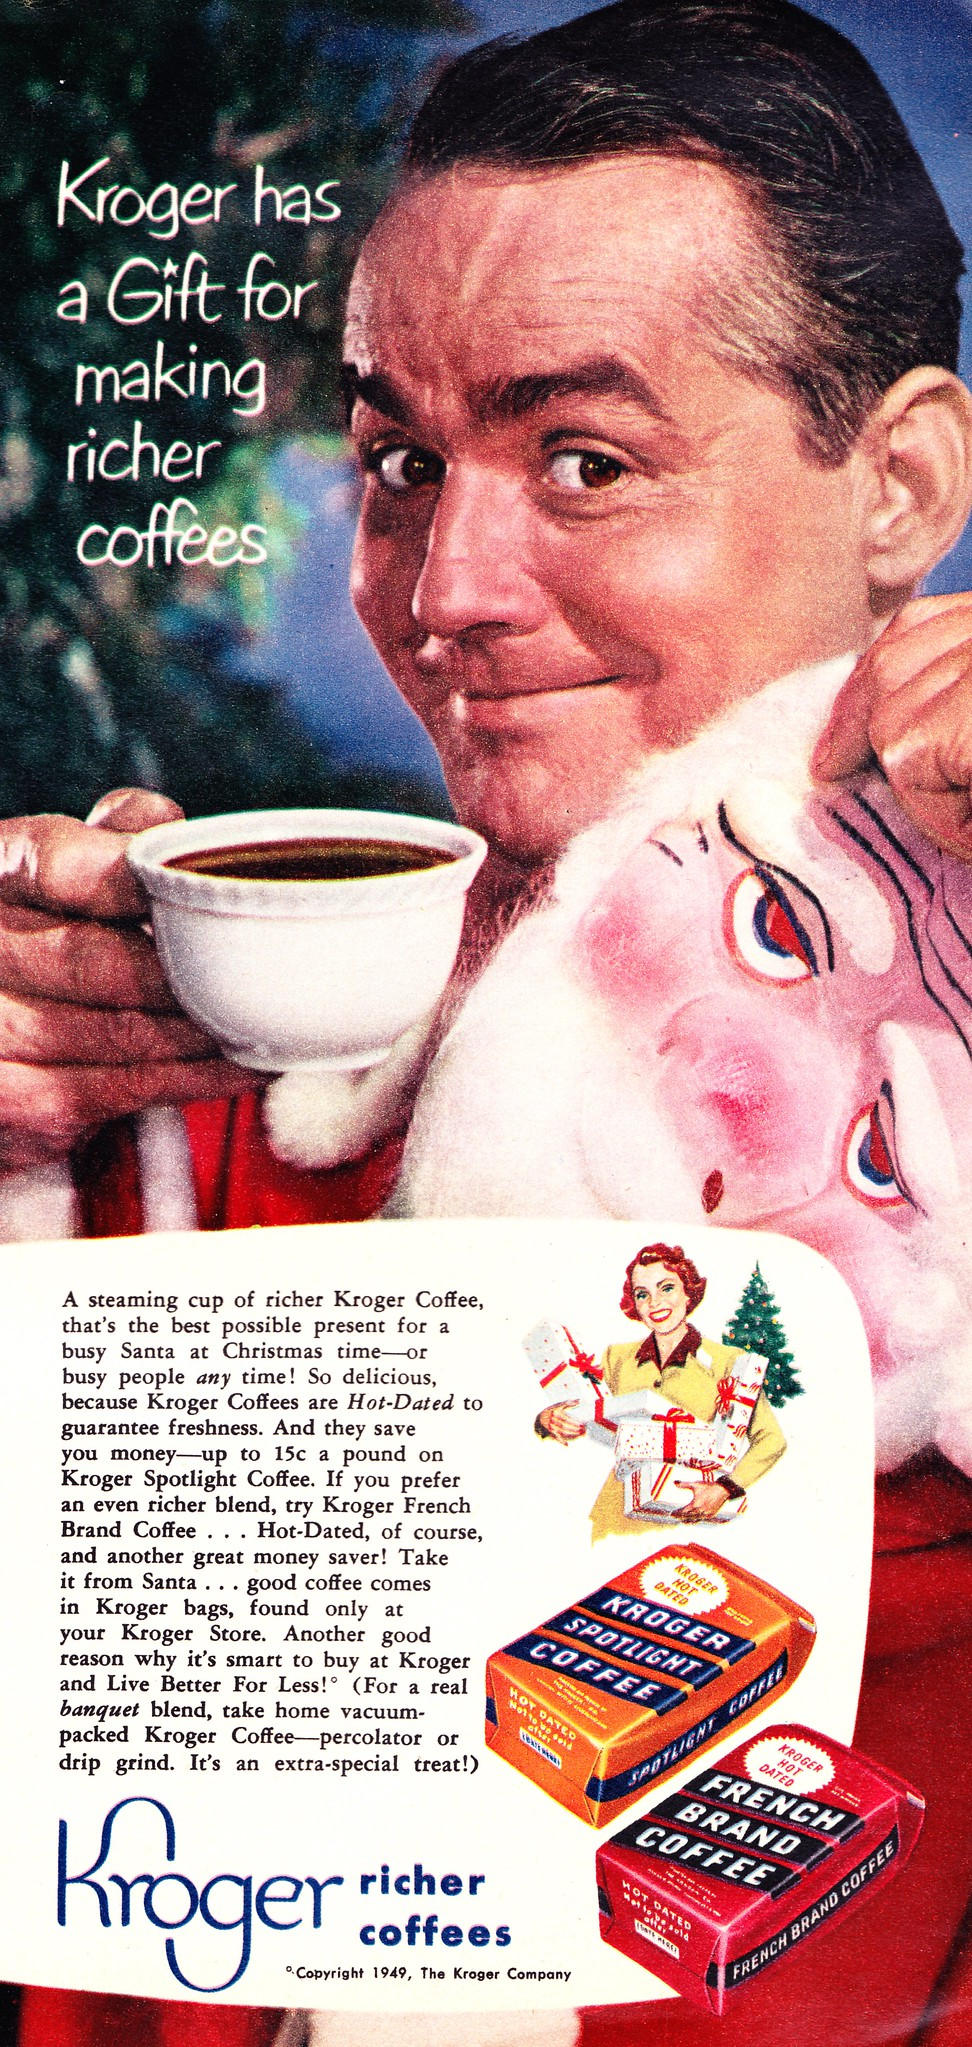 Kroger Coffees - published in Family Circle - December 1950